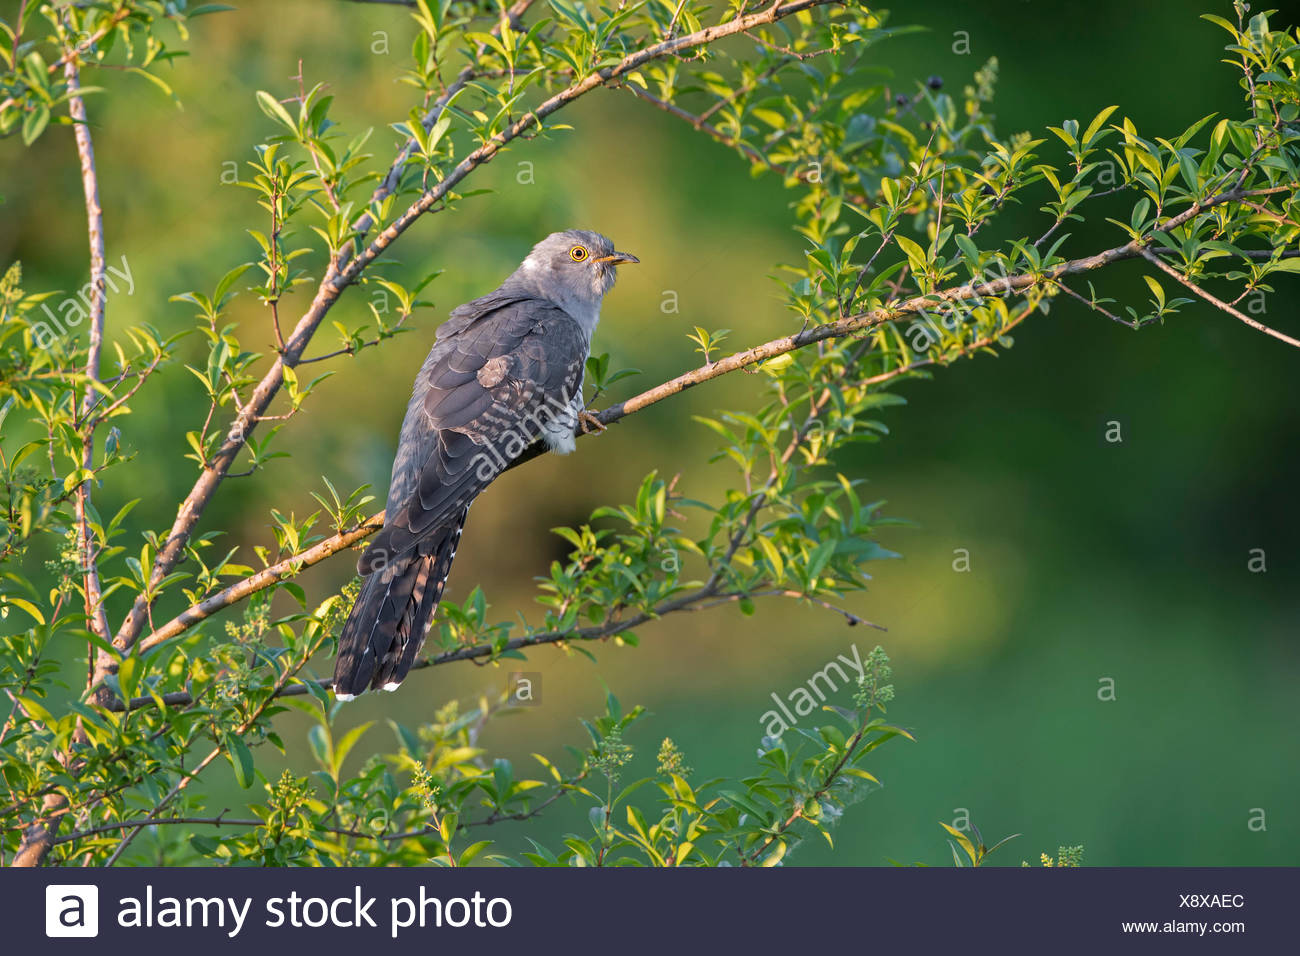 Cuckoo (Cuculus canorus), Saxony-Anhalt, Germany - Stock Image